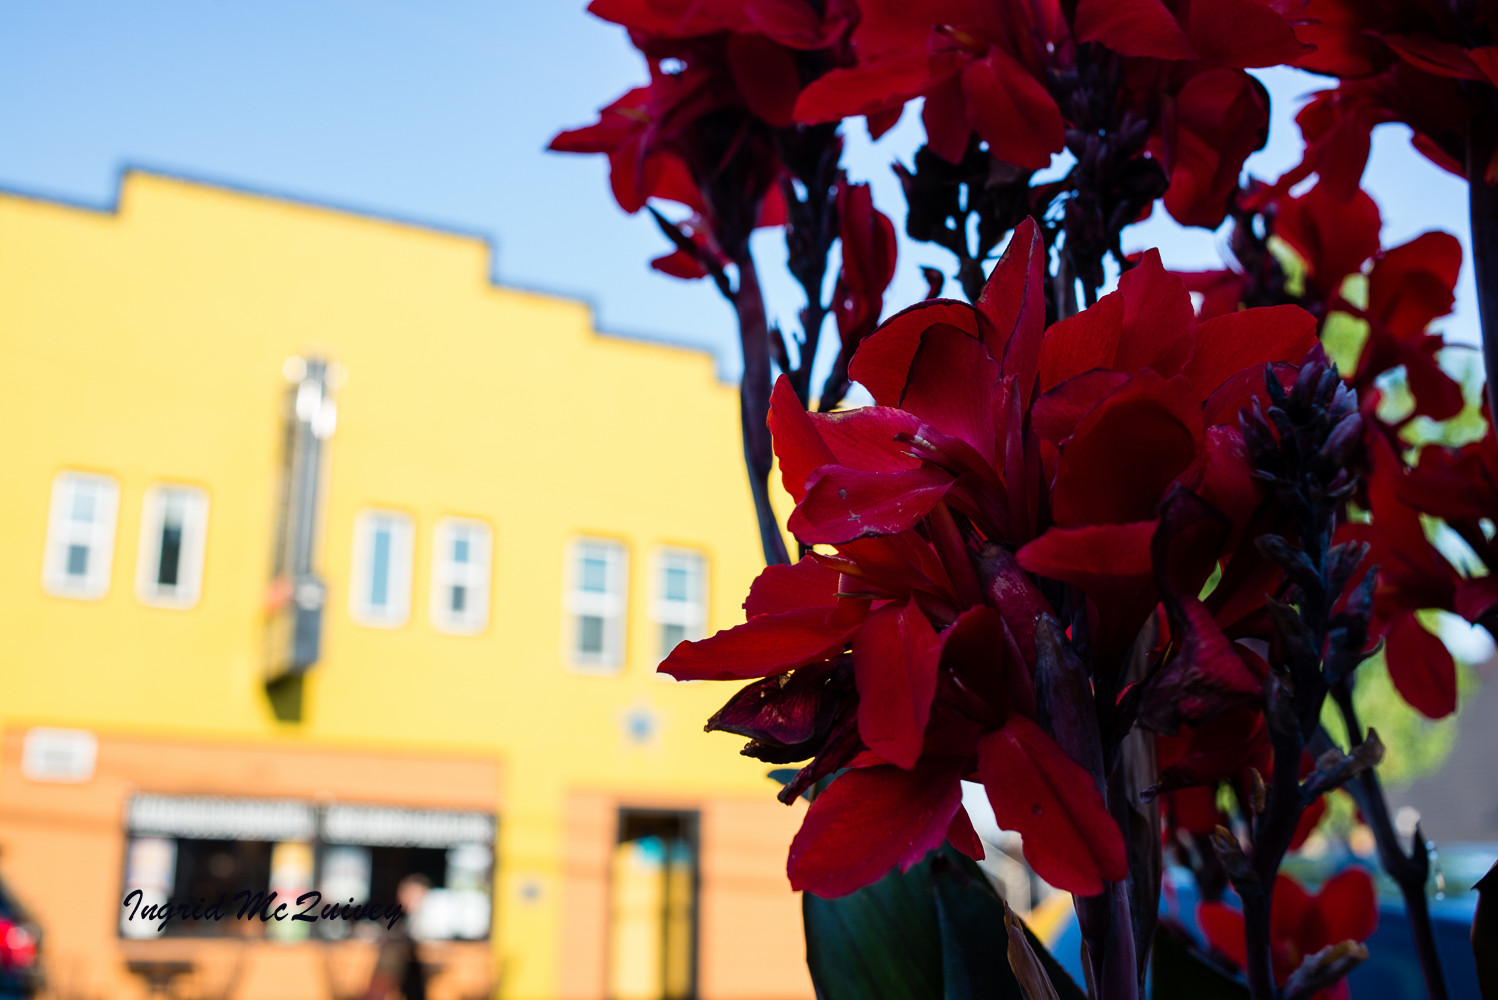 THE OLD LIBERTY THEATER IS THE YELLOW BUILDING BEYOND THE FLOWERS.